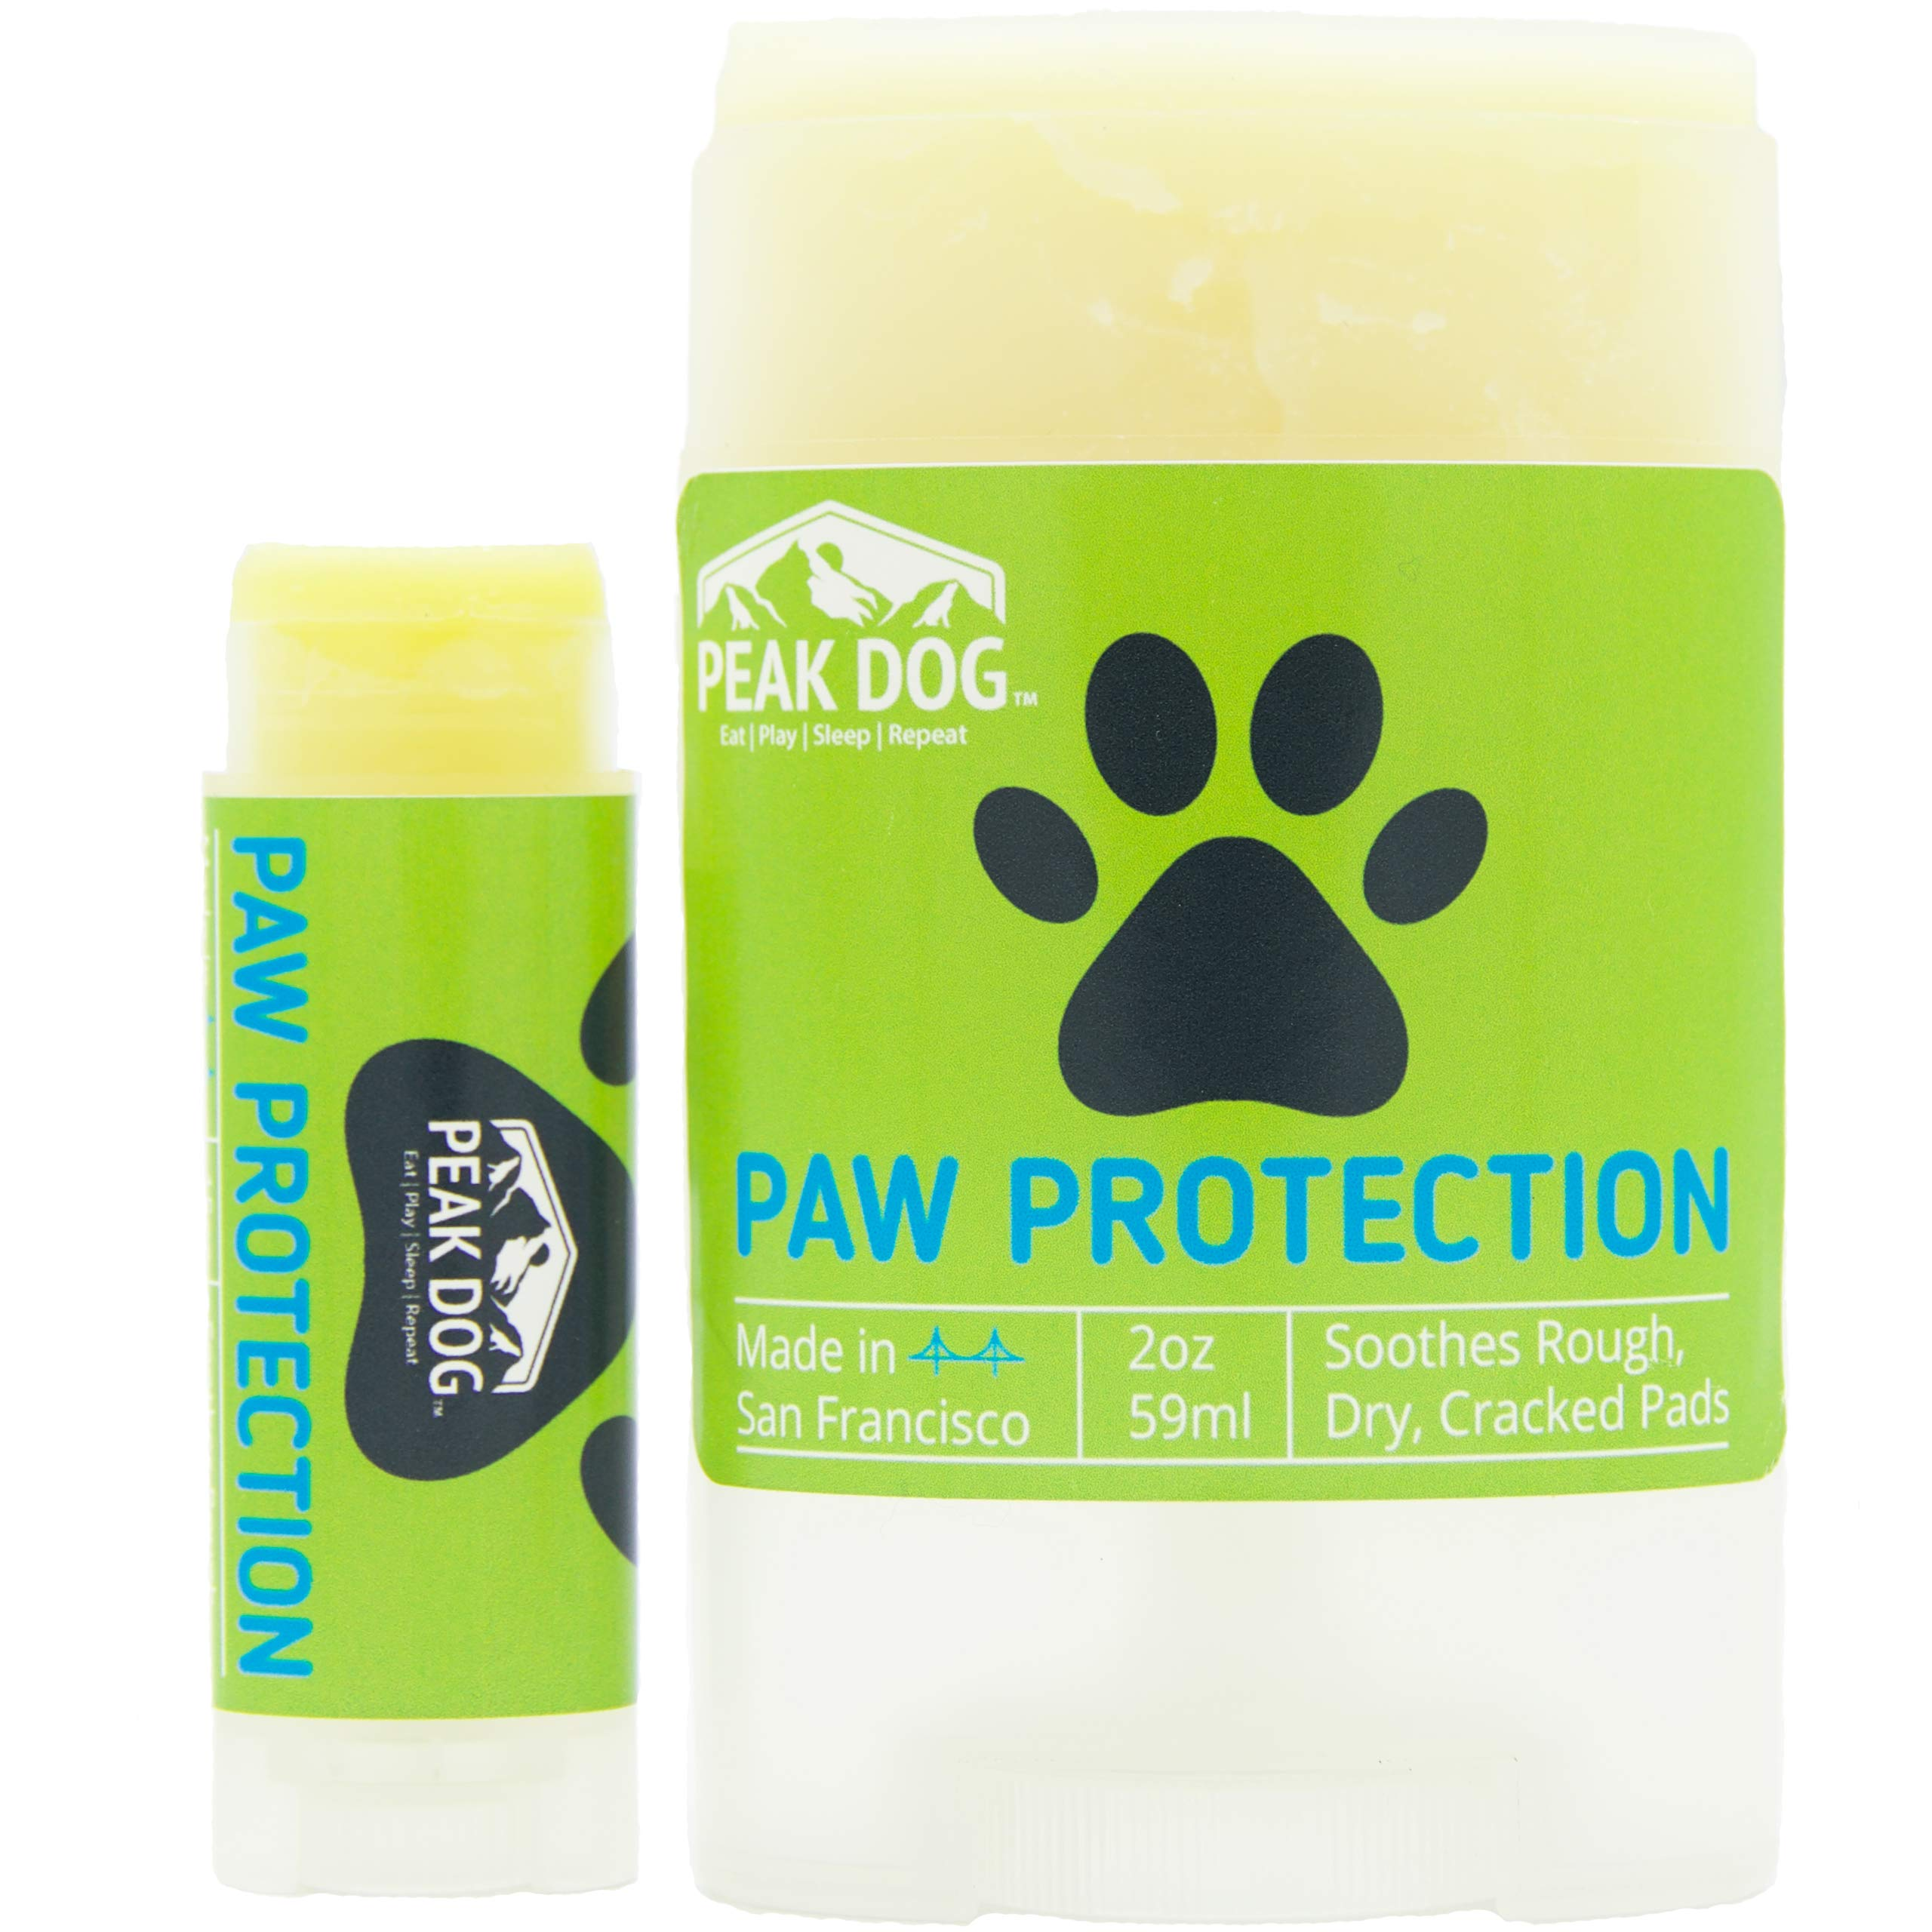 Peak Dog Paw Protector (2oz Stick & .15oz Travel Size) by Peak Dog